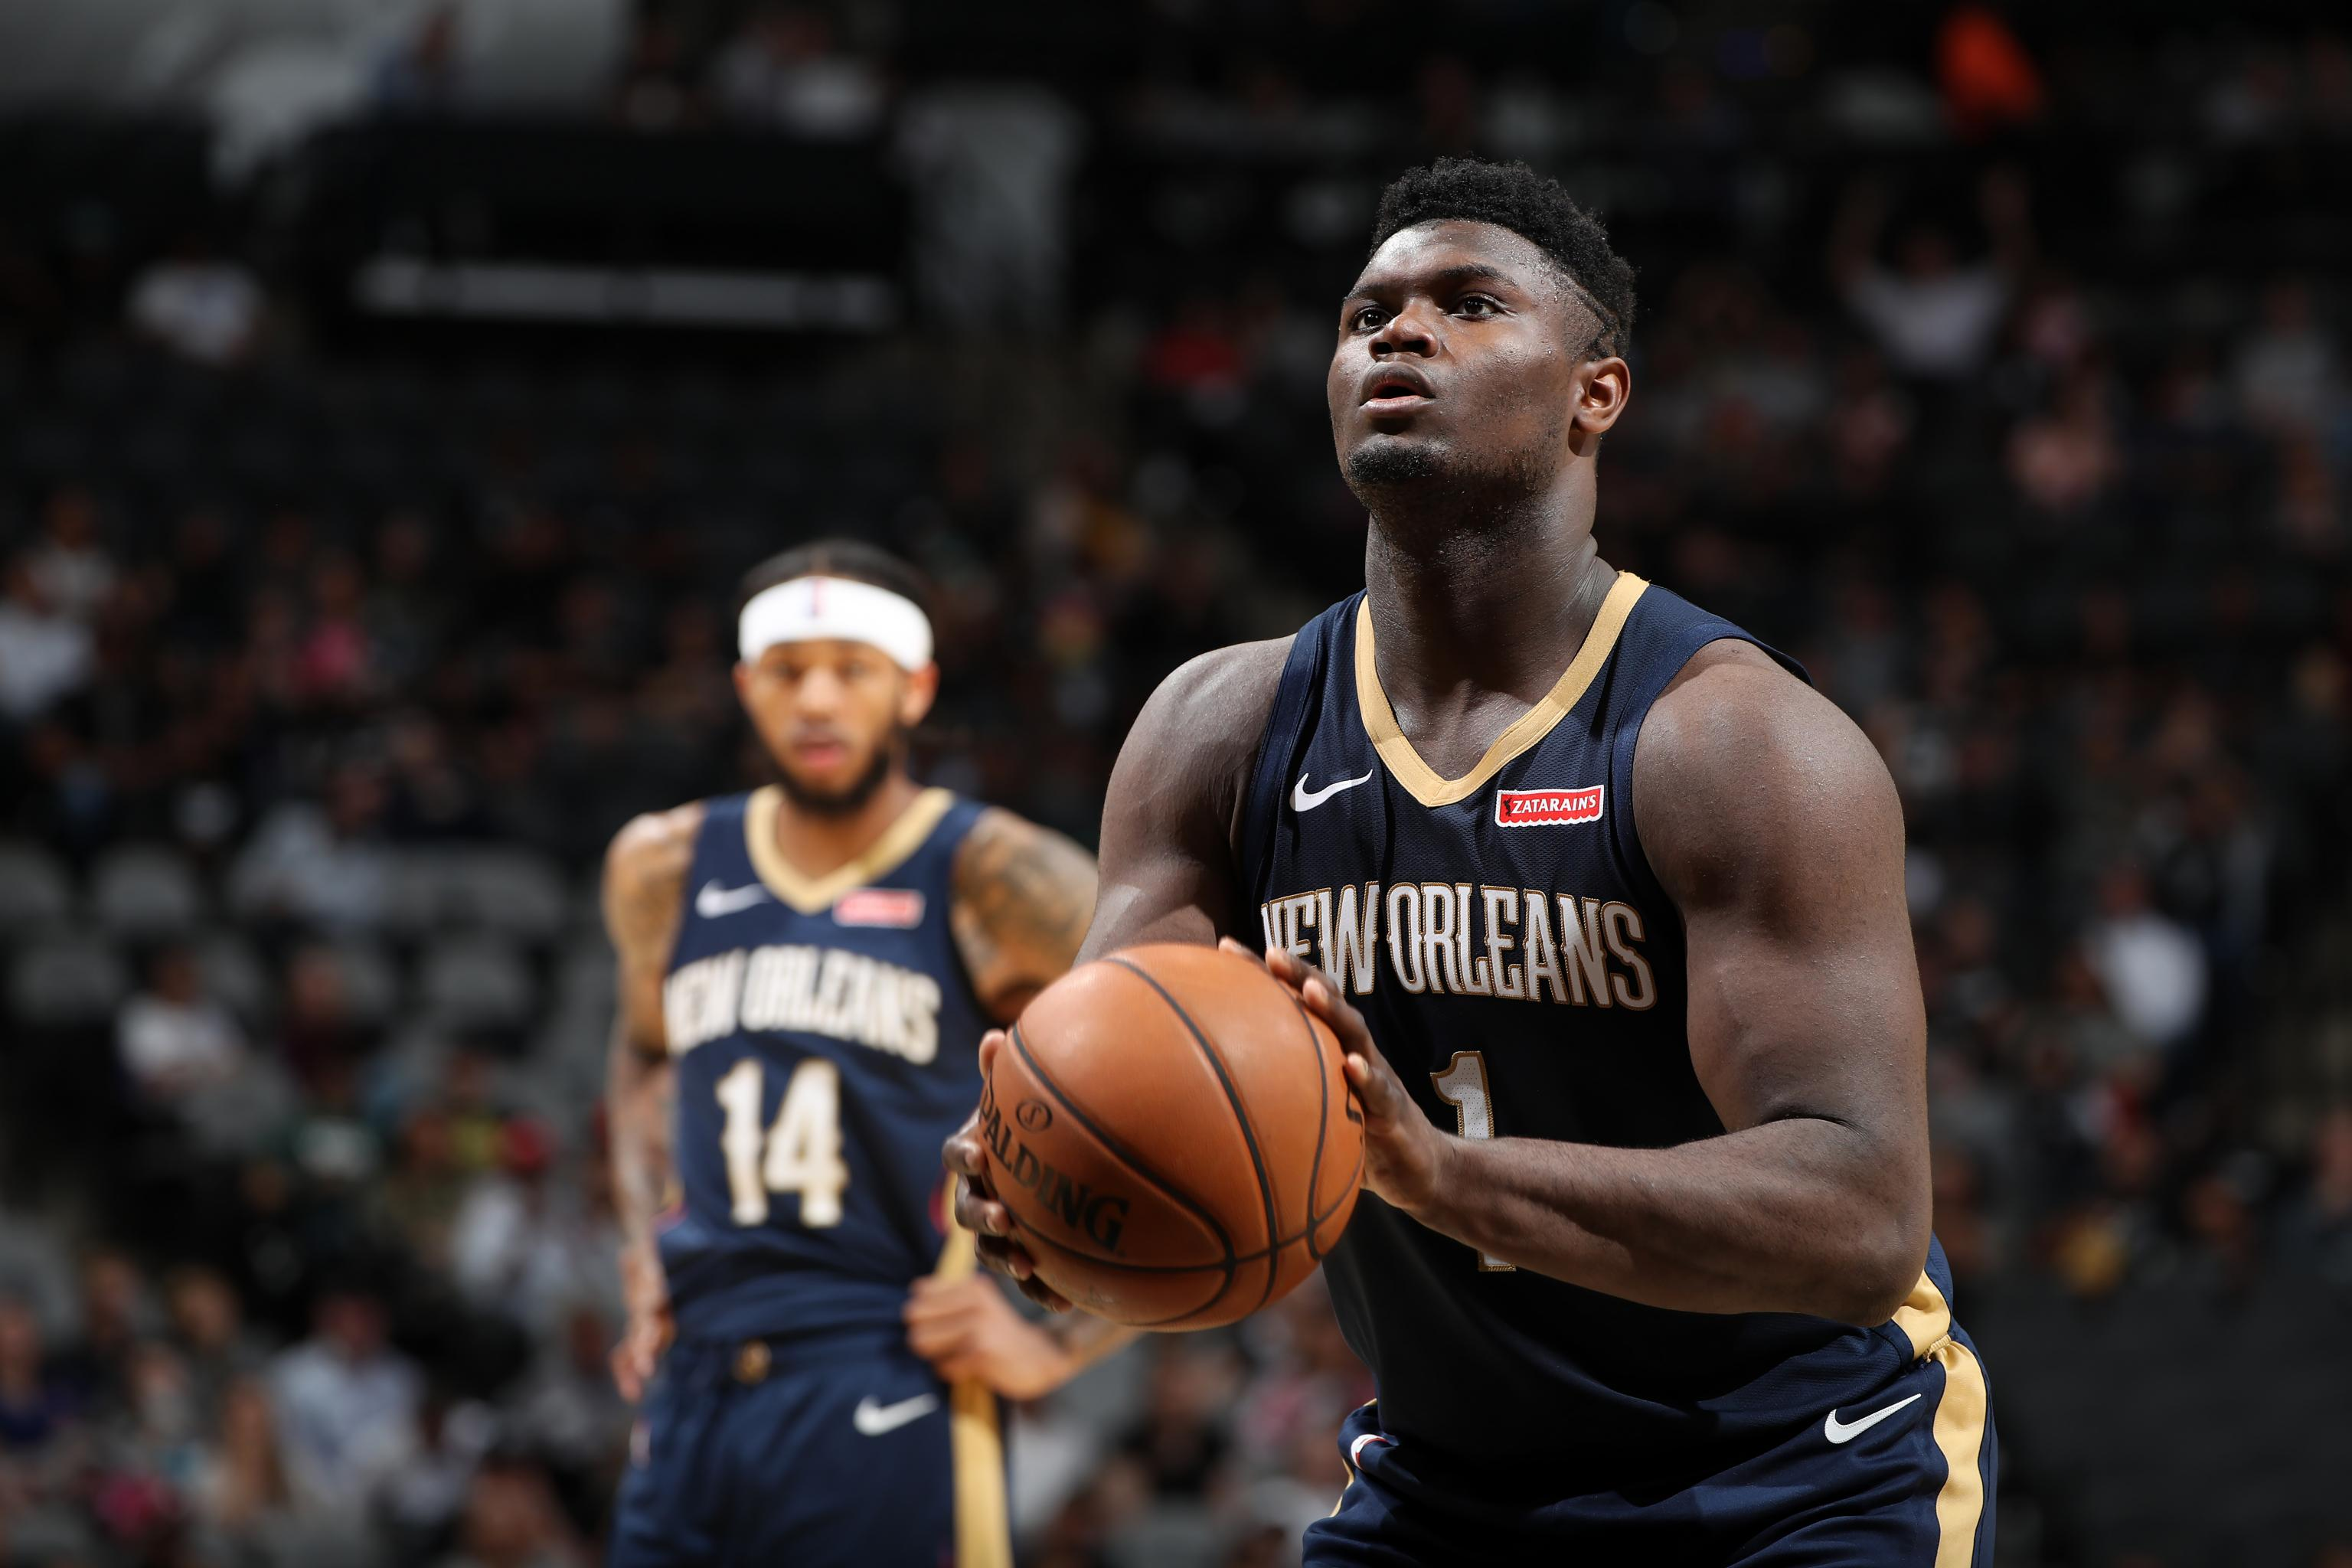 Report Pelicans Zion Williamson To Miss Period Of Weeks With Knee Injury Bleacher Report Latest News Videos And Highlights